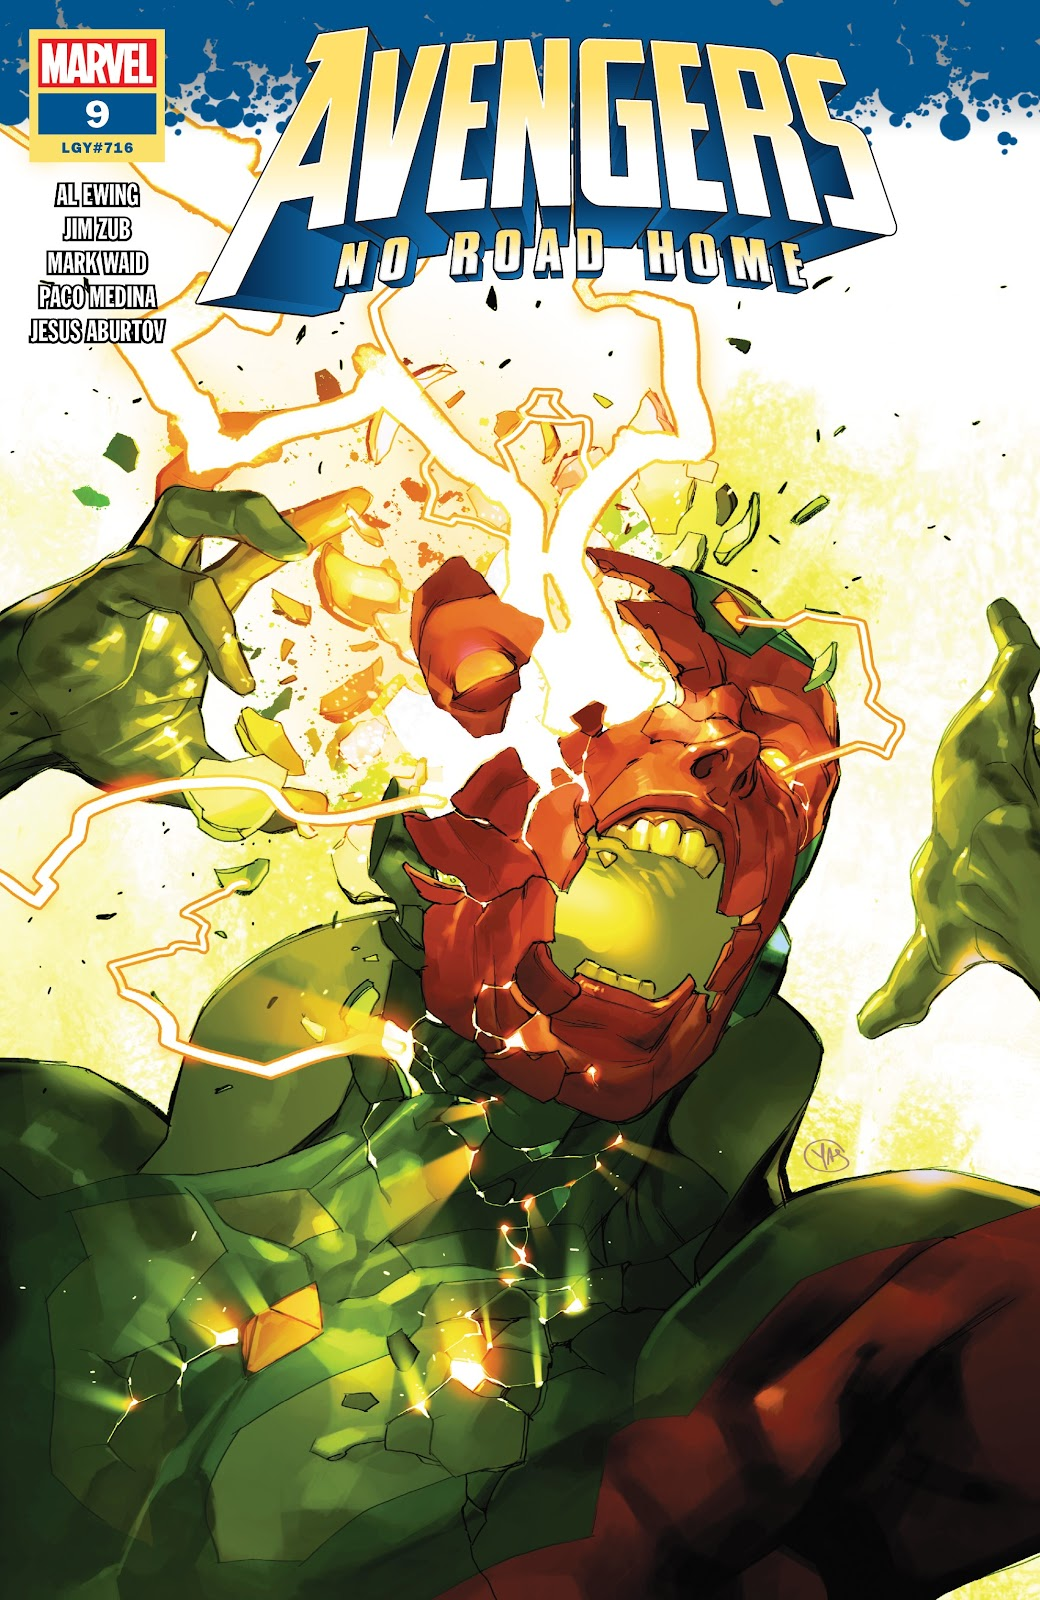 Read online Avengers No Road Home comic -  Issue #9 - 1